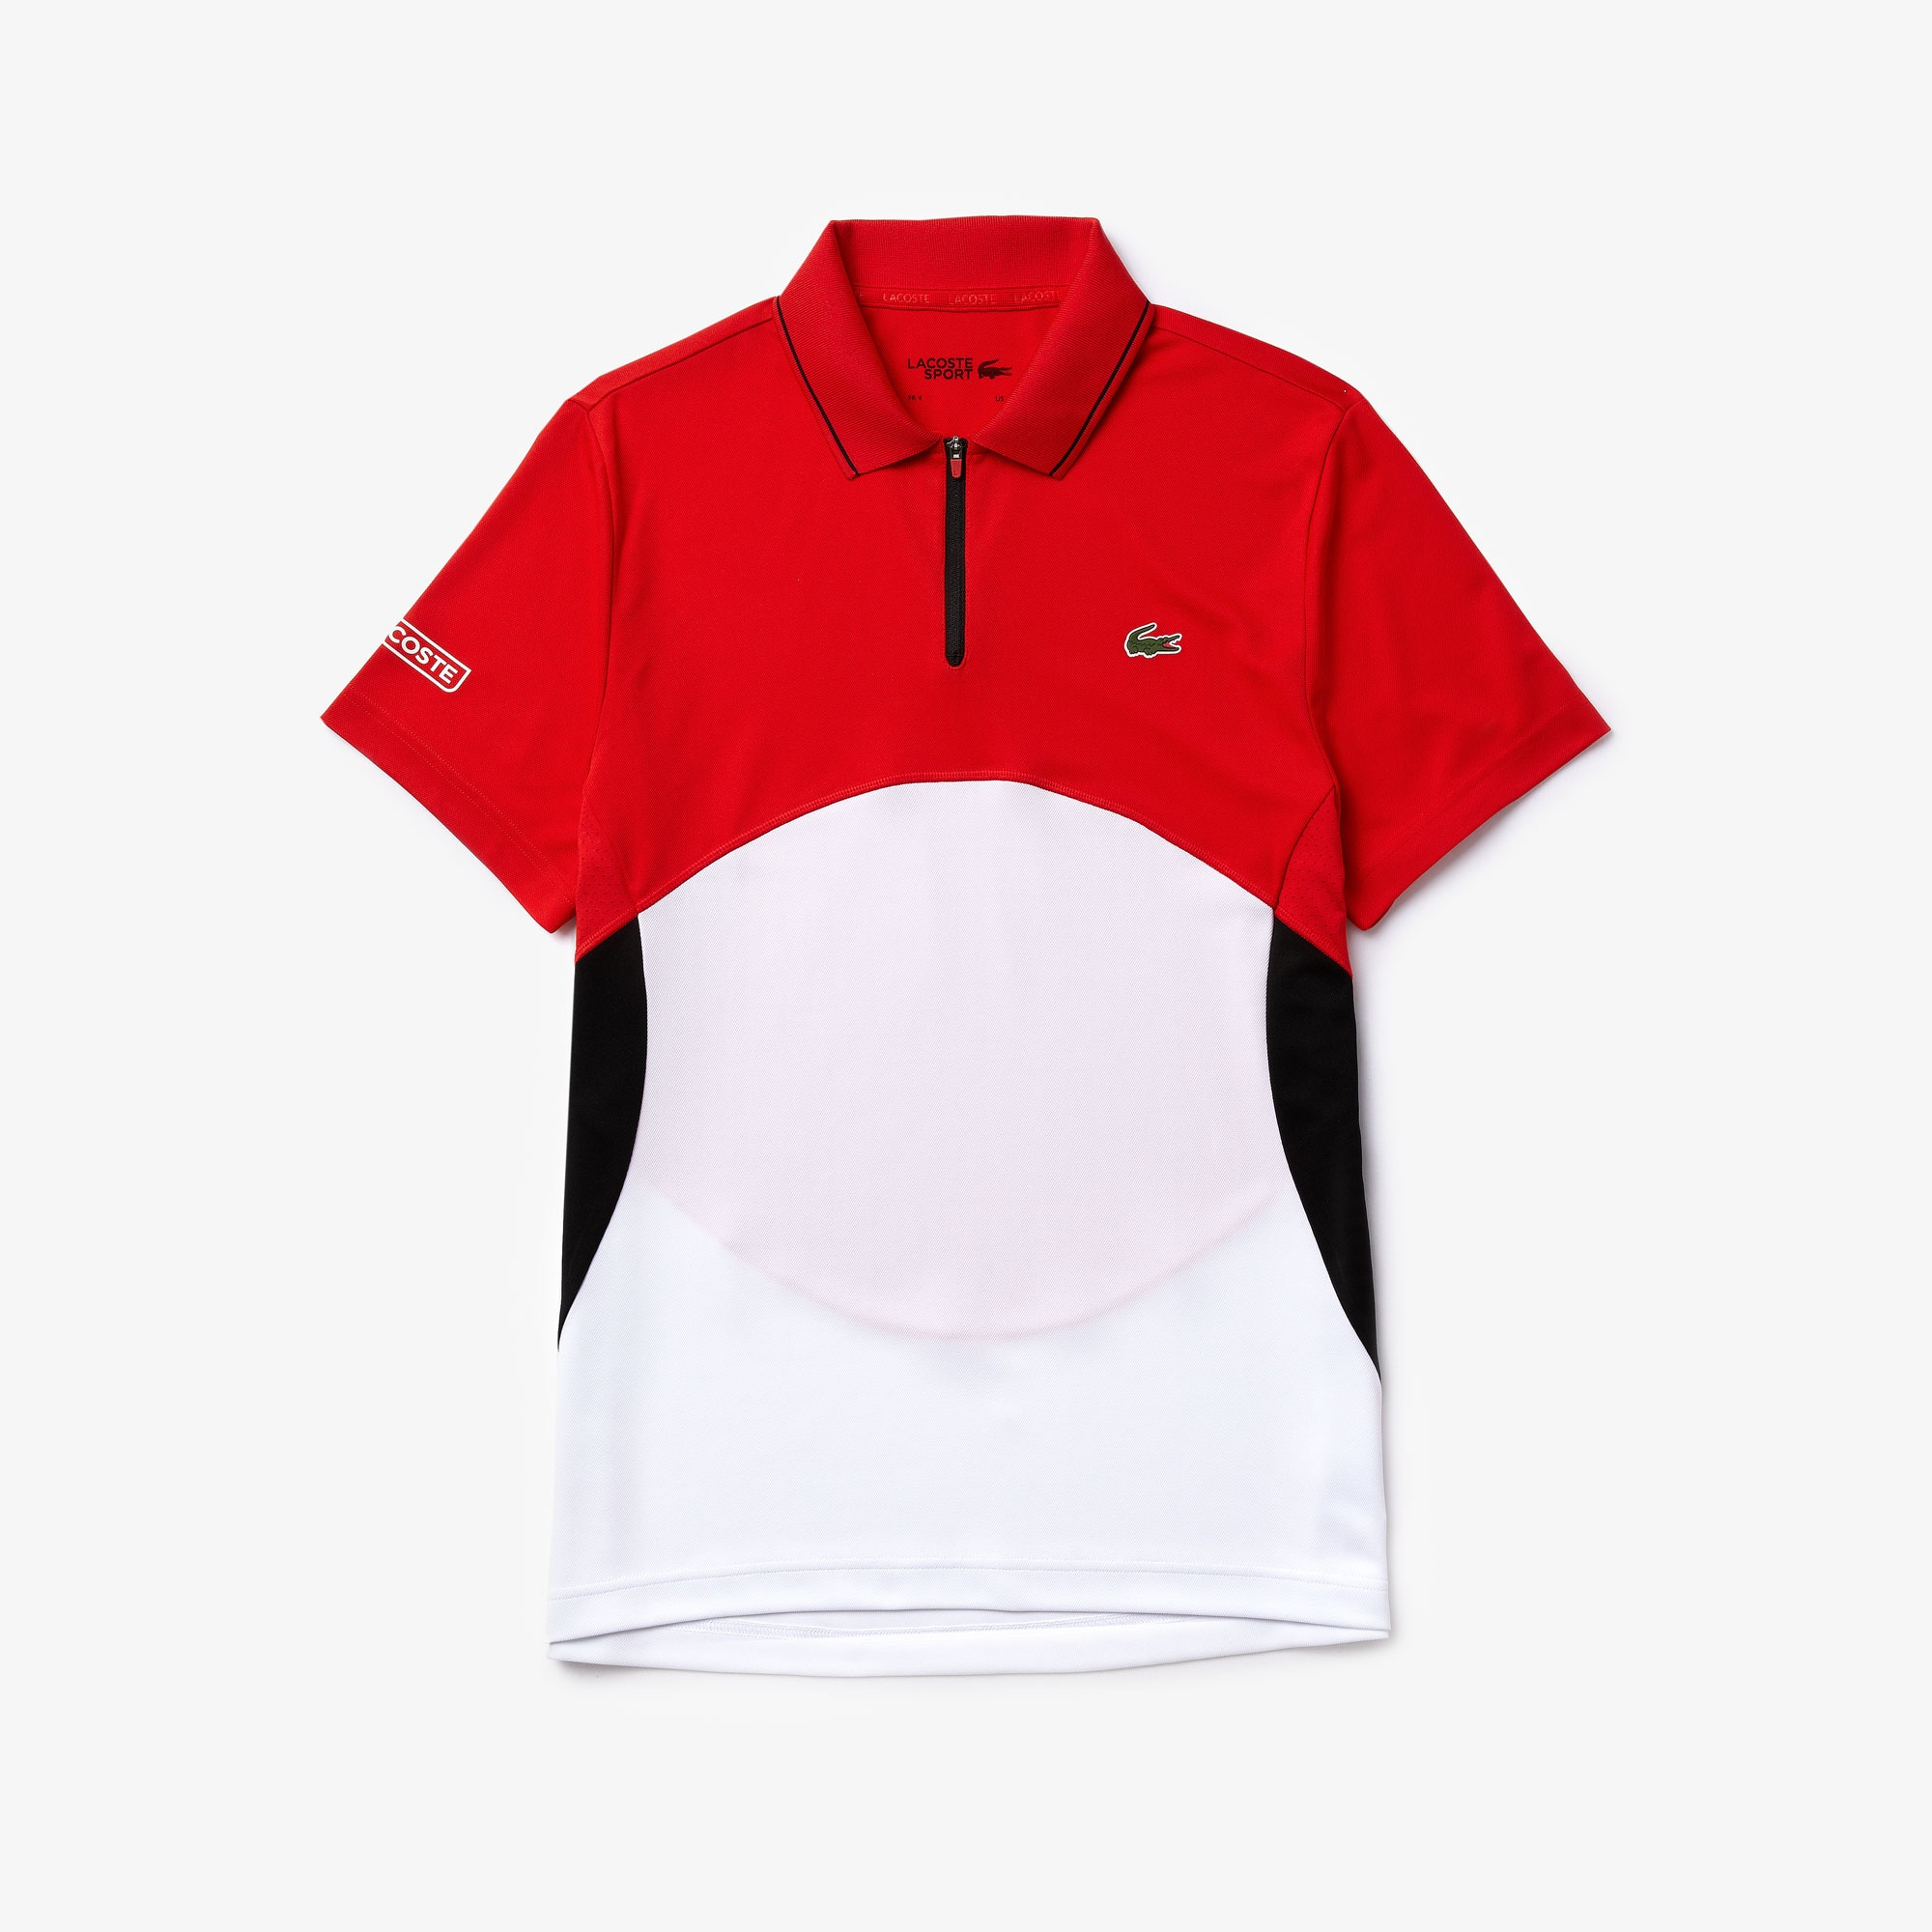 Men's Lacoste SPORT Ultra-Dry Piqué Zip Tennis Polo Shirt